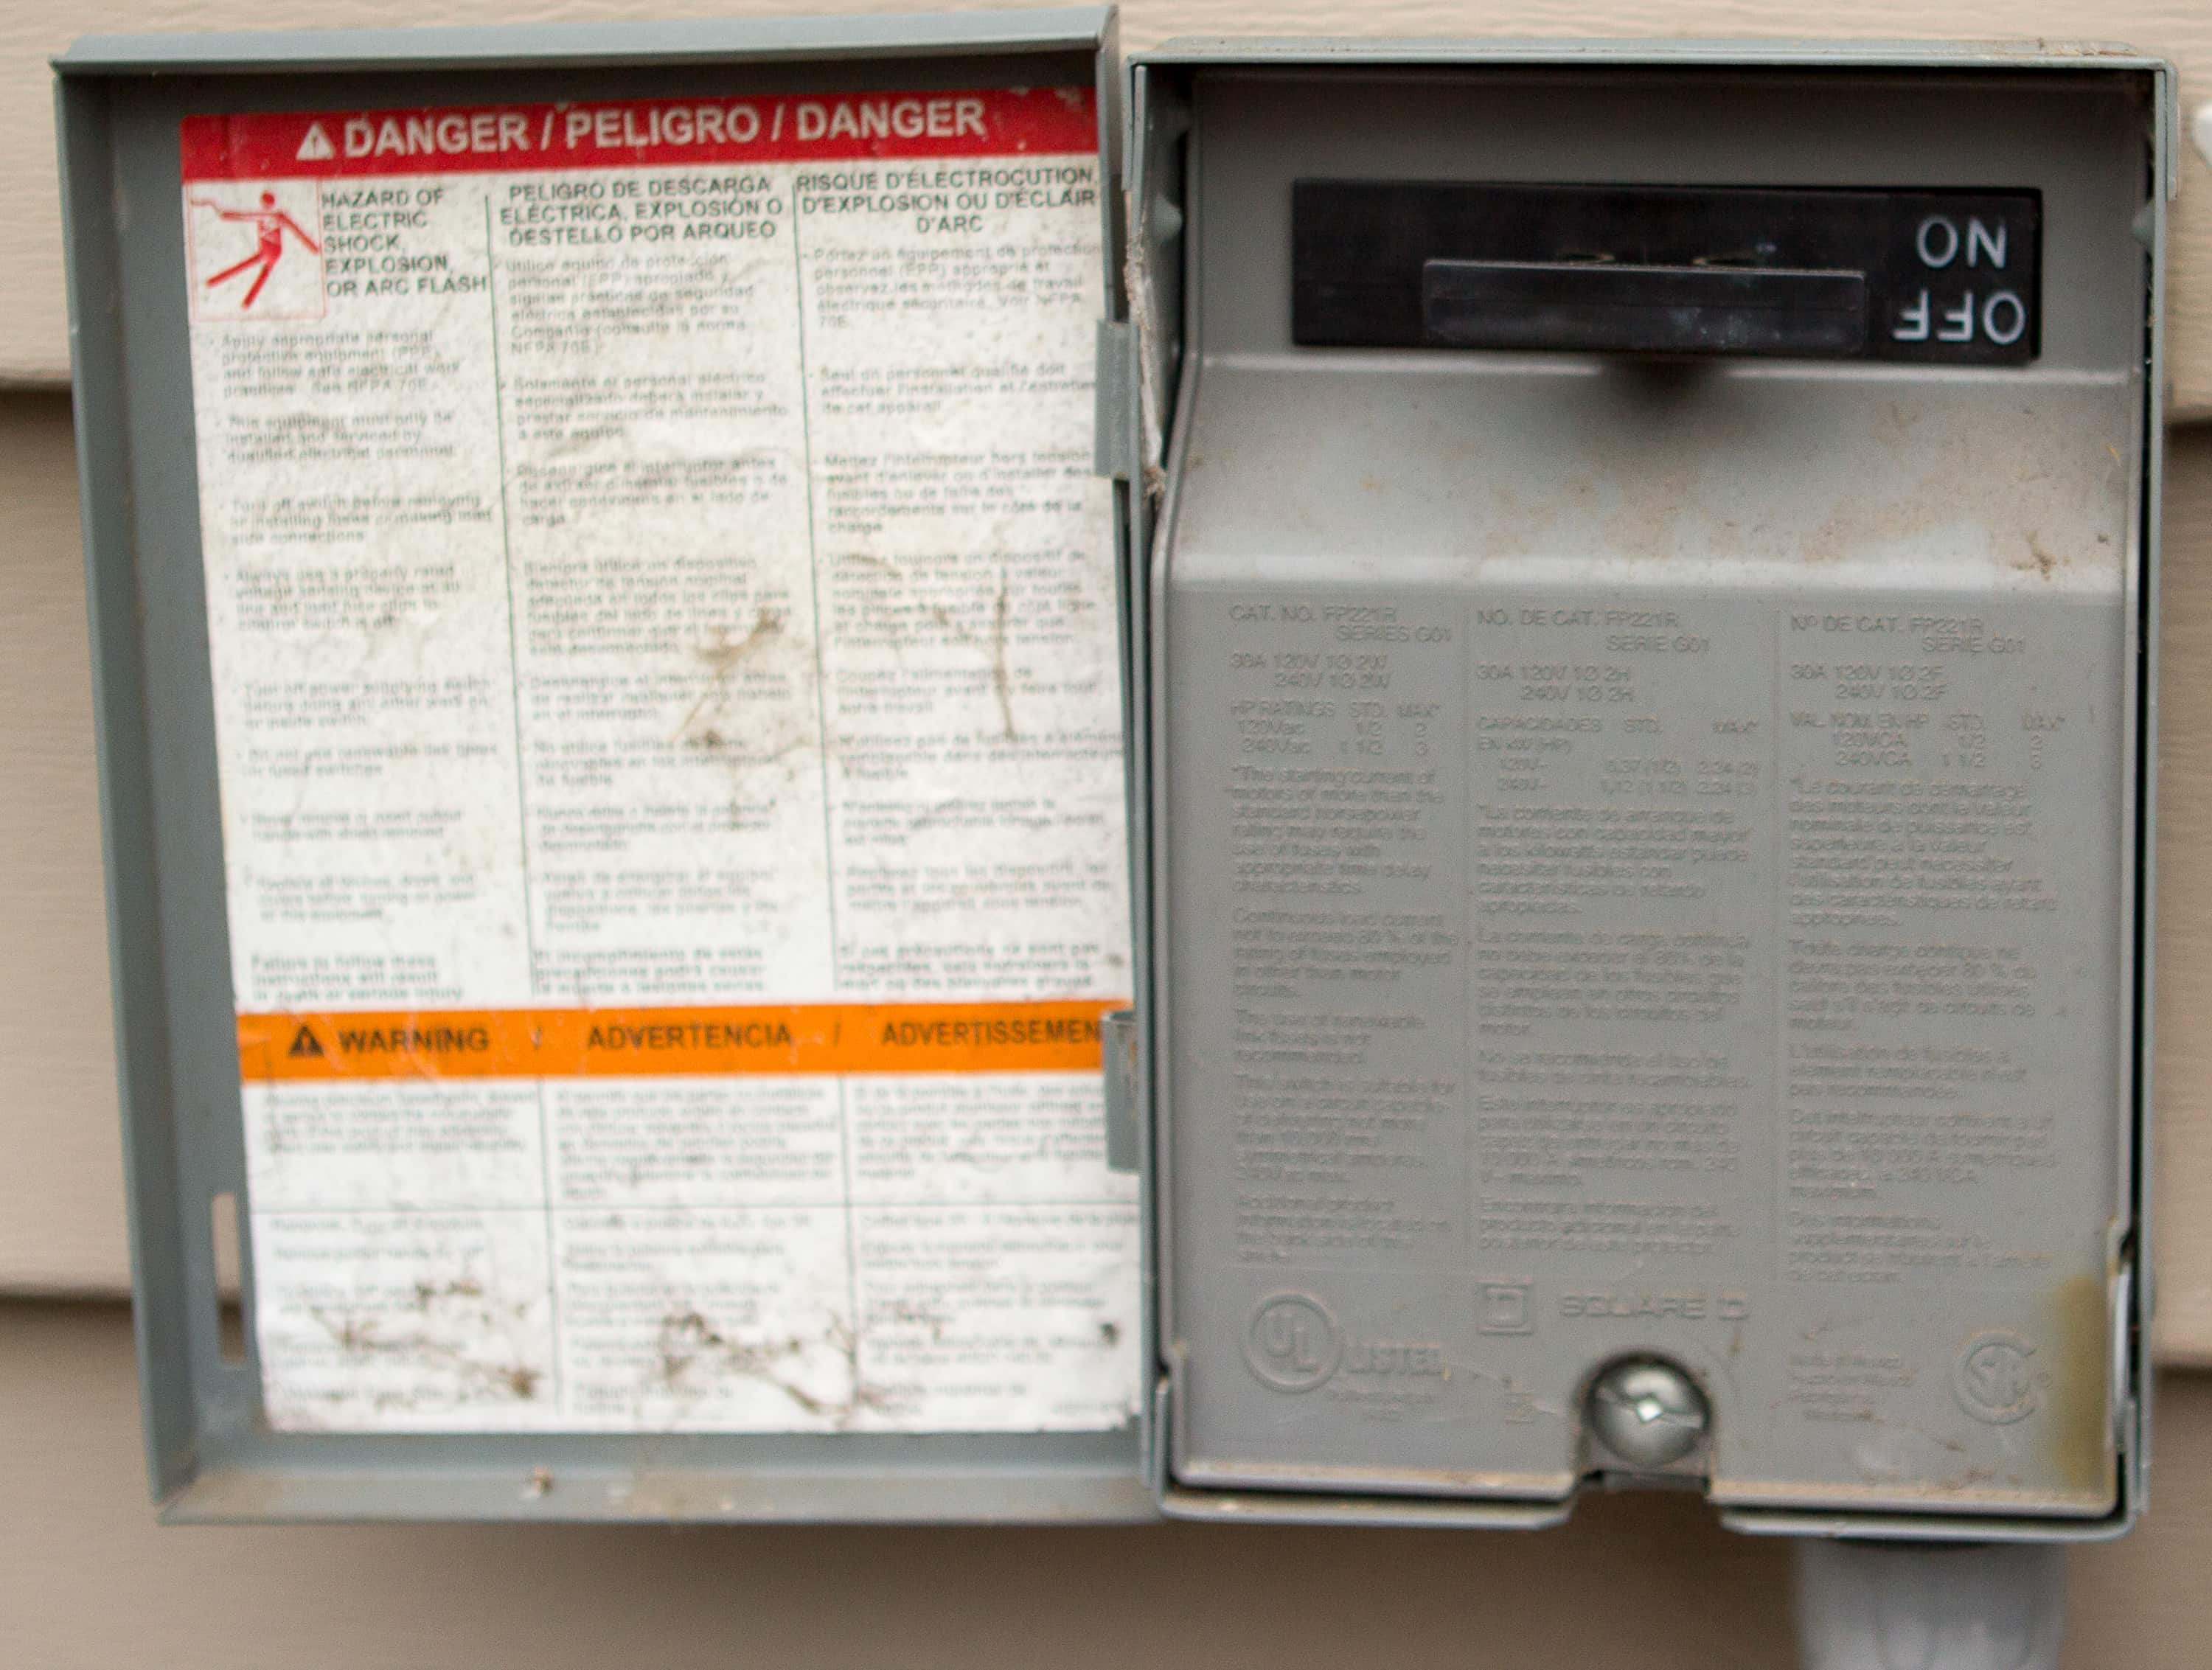 Air Conditioner Fuse Box Outside Ivoiregion Here39s Some Switch Symbols Switches Are Anything That Controls An Will